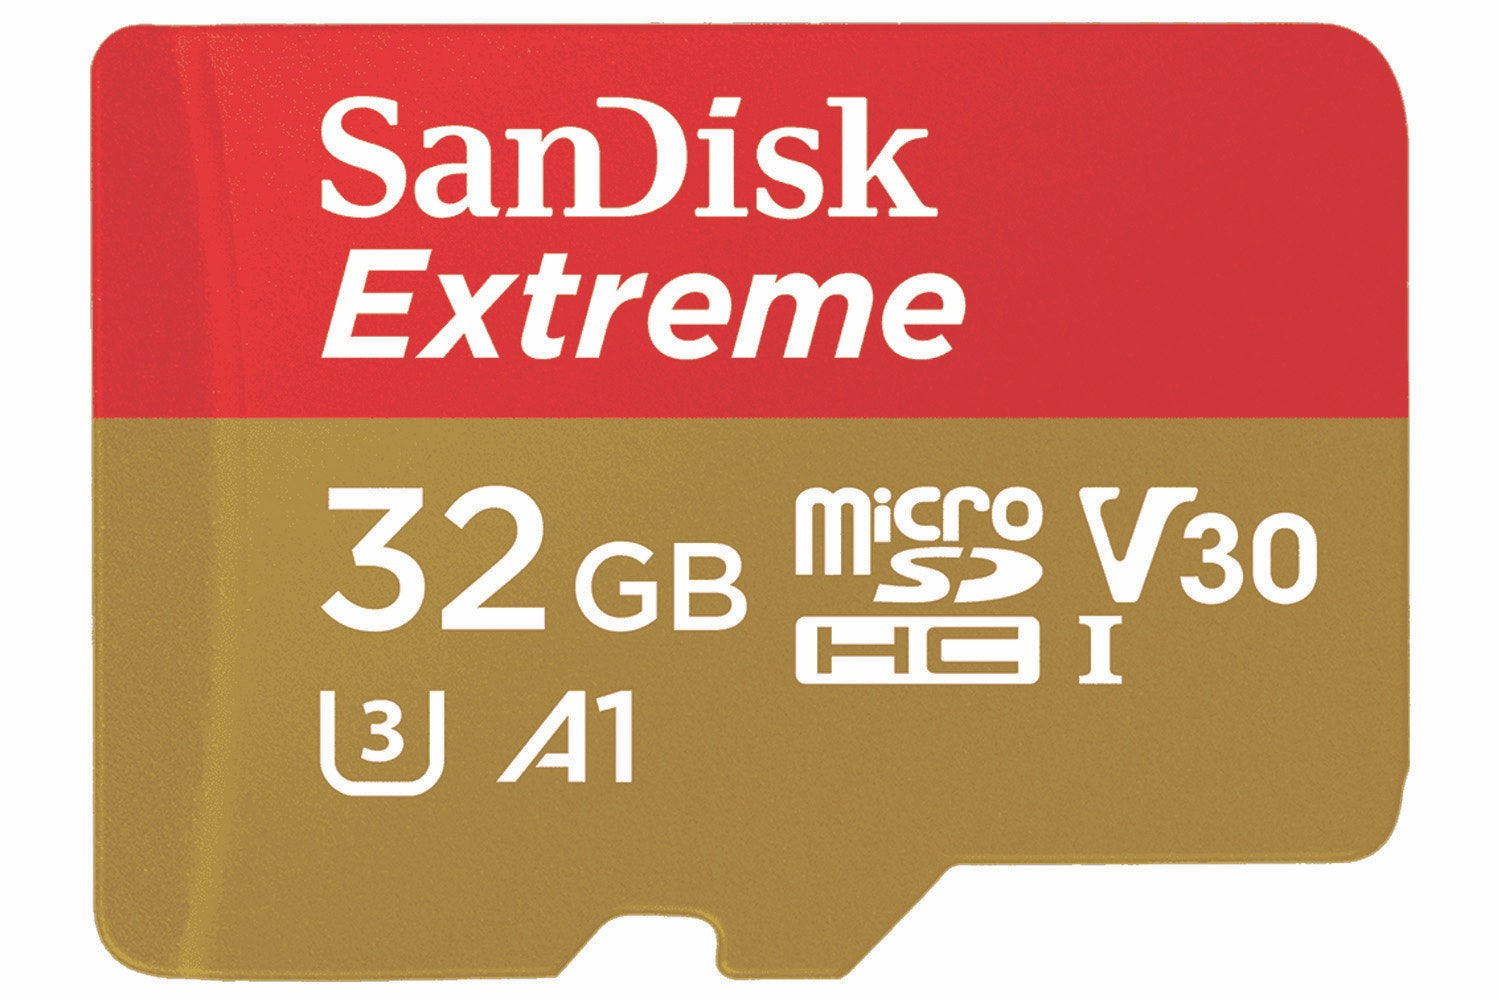 Sandisk Extreme Micro SD Card | 32GB